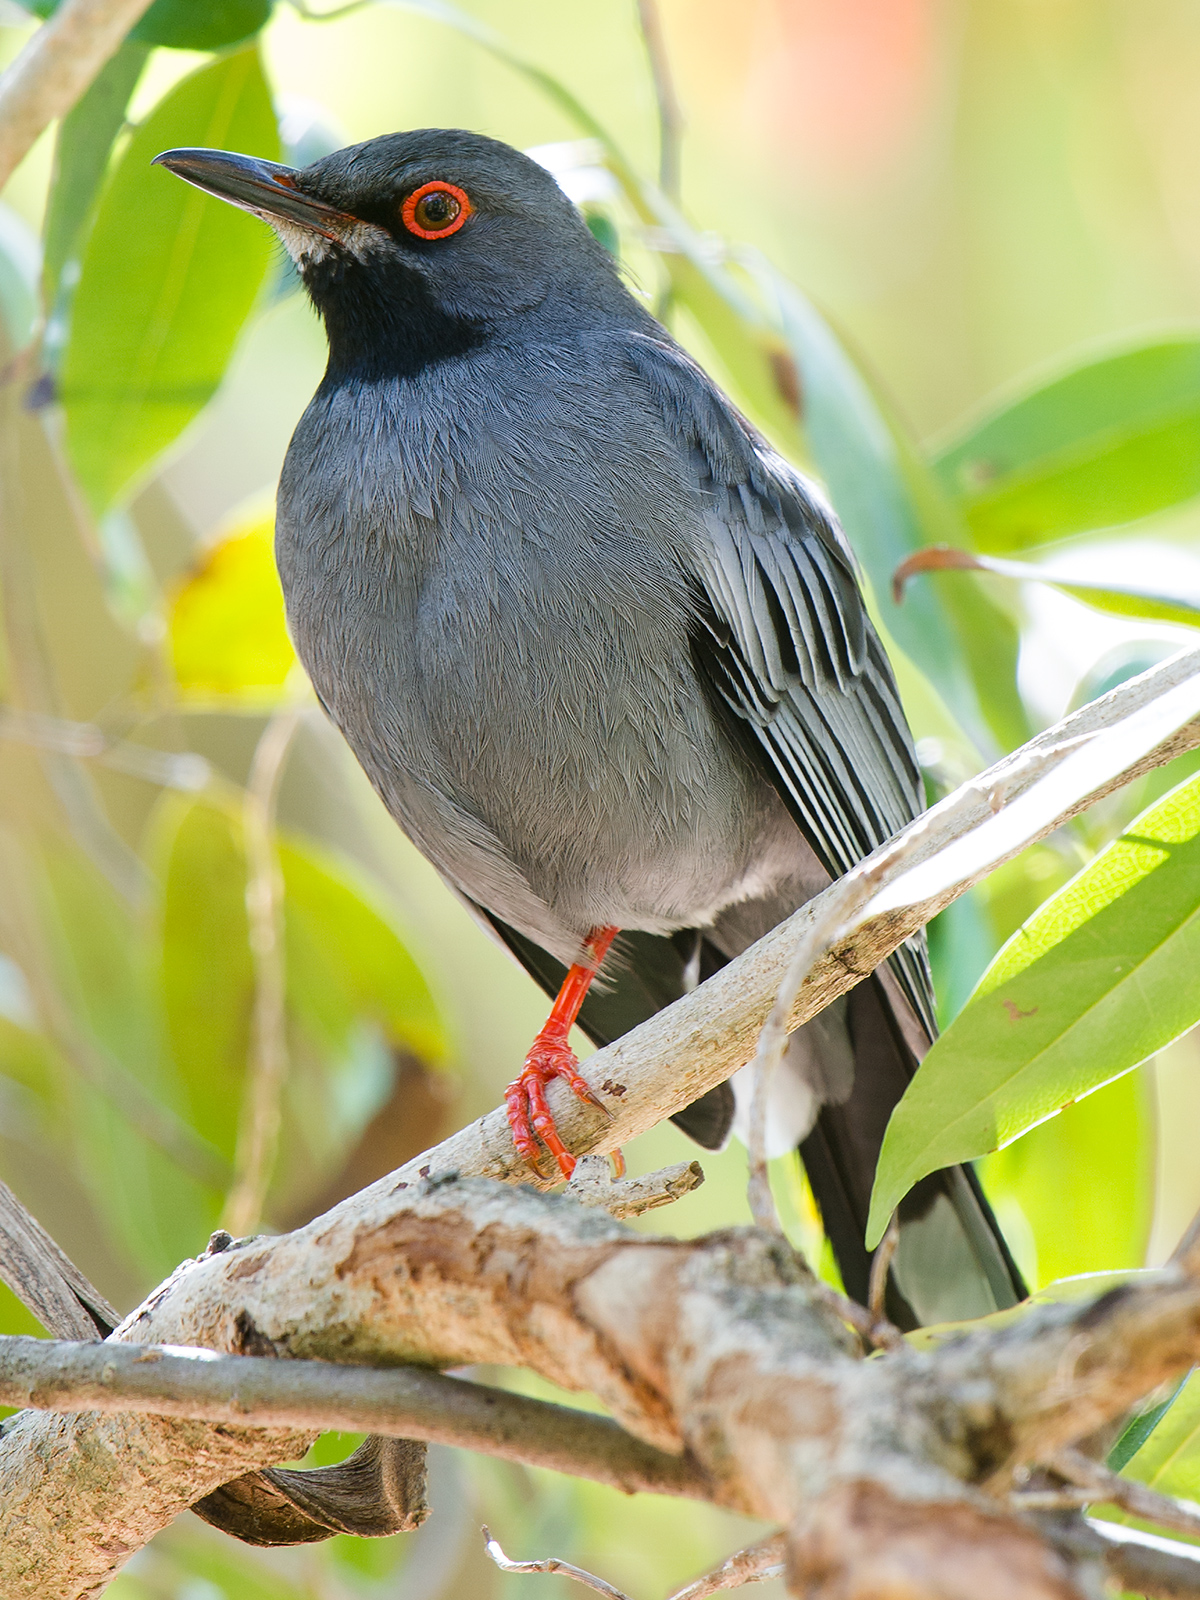 Red-legged Thrush Turdus plumbeus plumbeus, The Retreat, Bahamas National Trust, Nassau, New Providence, Bahamas (25.0638312, -77.3111343). 15 February 2017. © 2017 by Craig Brelsford (www.craigbrelsford.com, www.shanghaibirding.com).